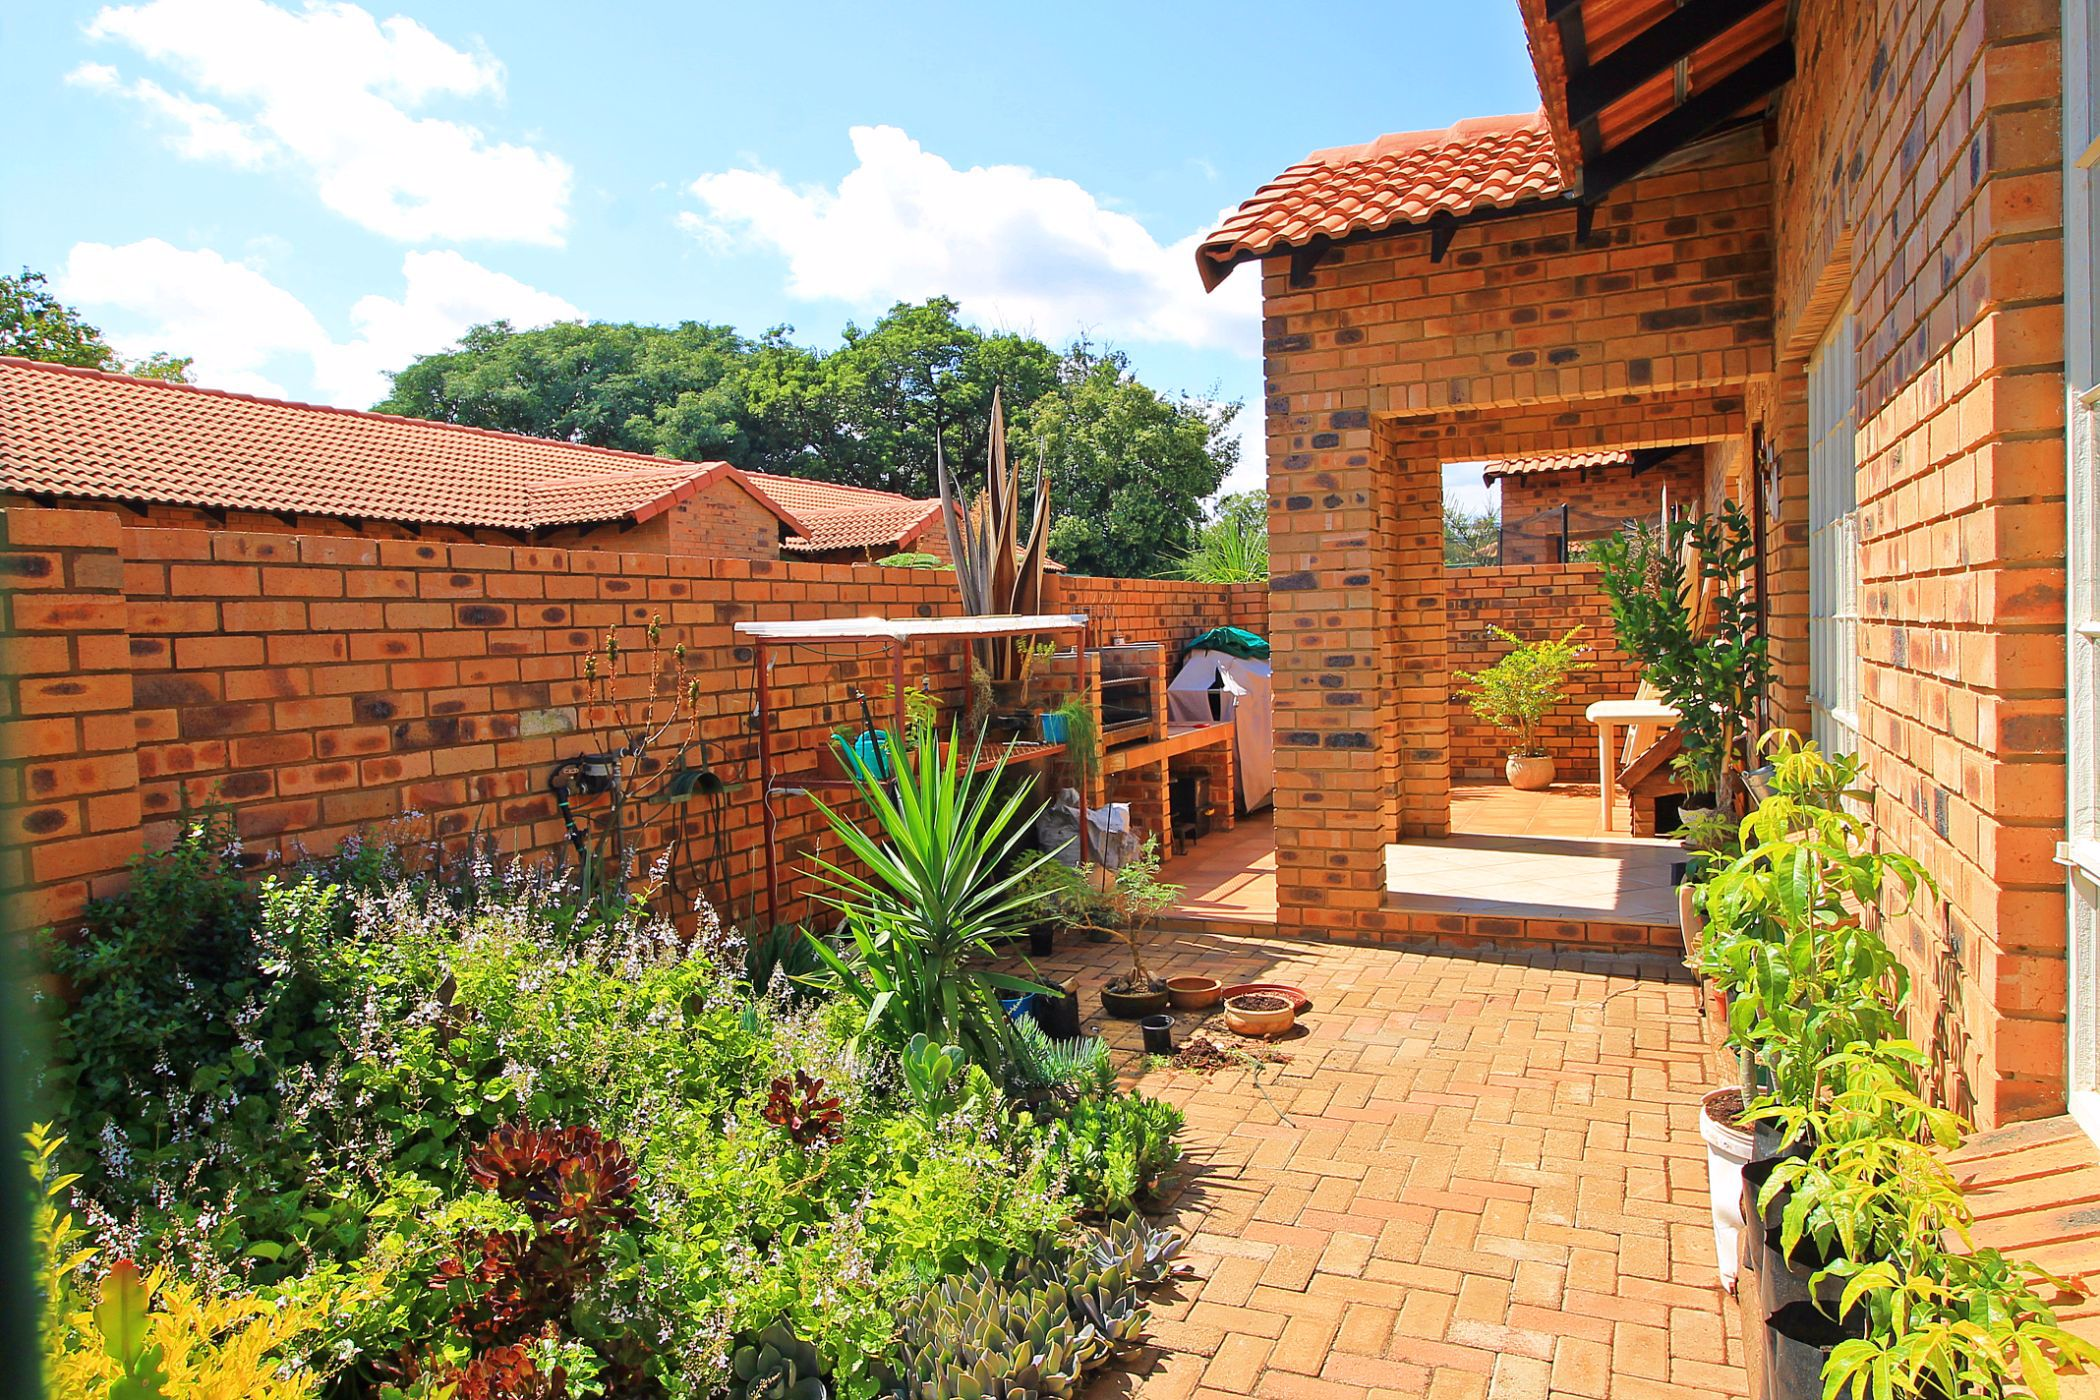 16 unit townhouse complex for sale in Lydenburg